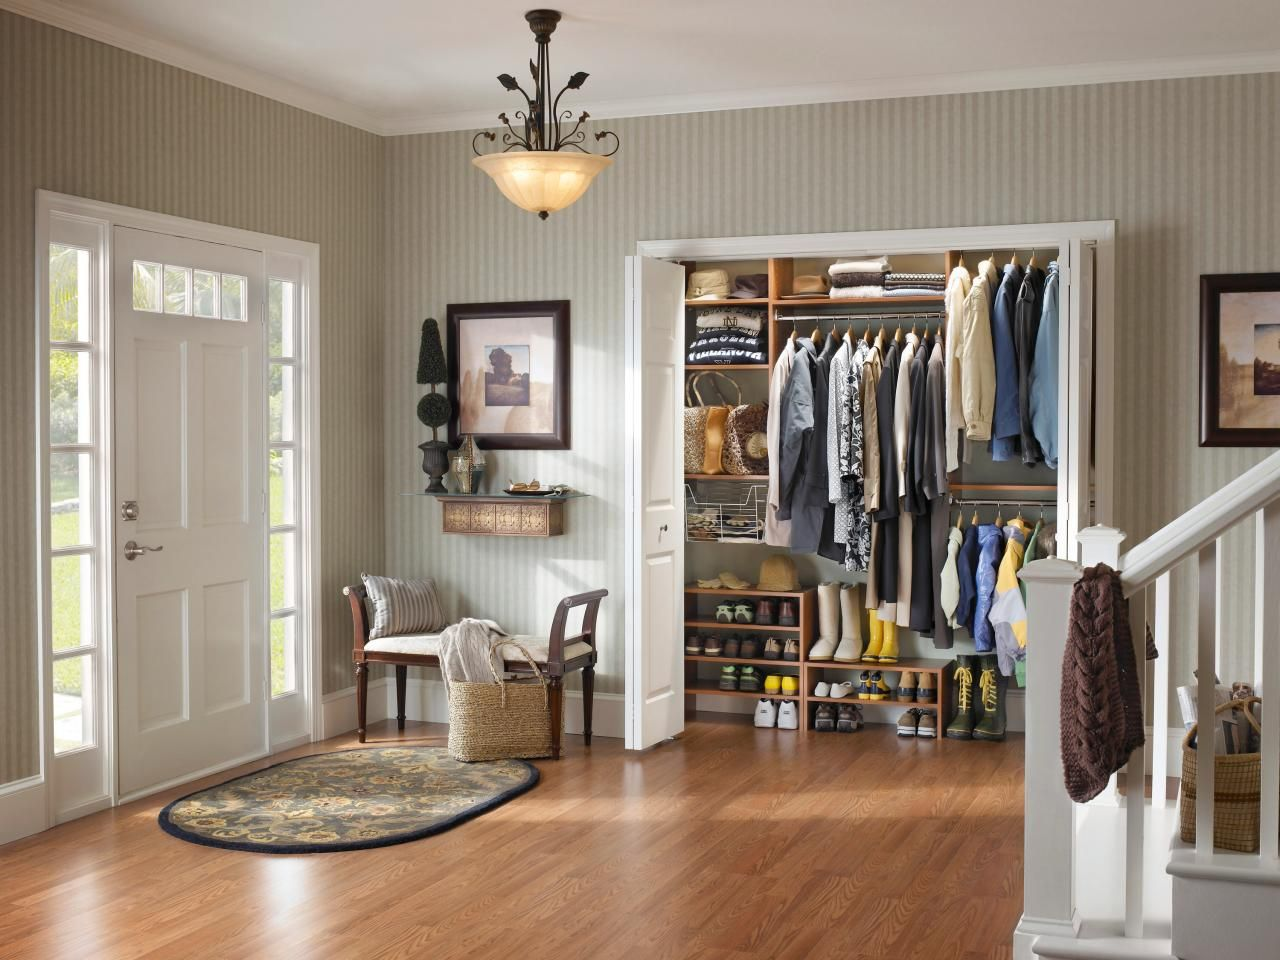 Living Room Closet Design Classy 10 Stylish Reachin Closets  Hgtv Foyers And Clutter Decorating Design